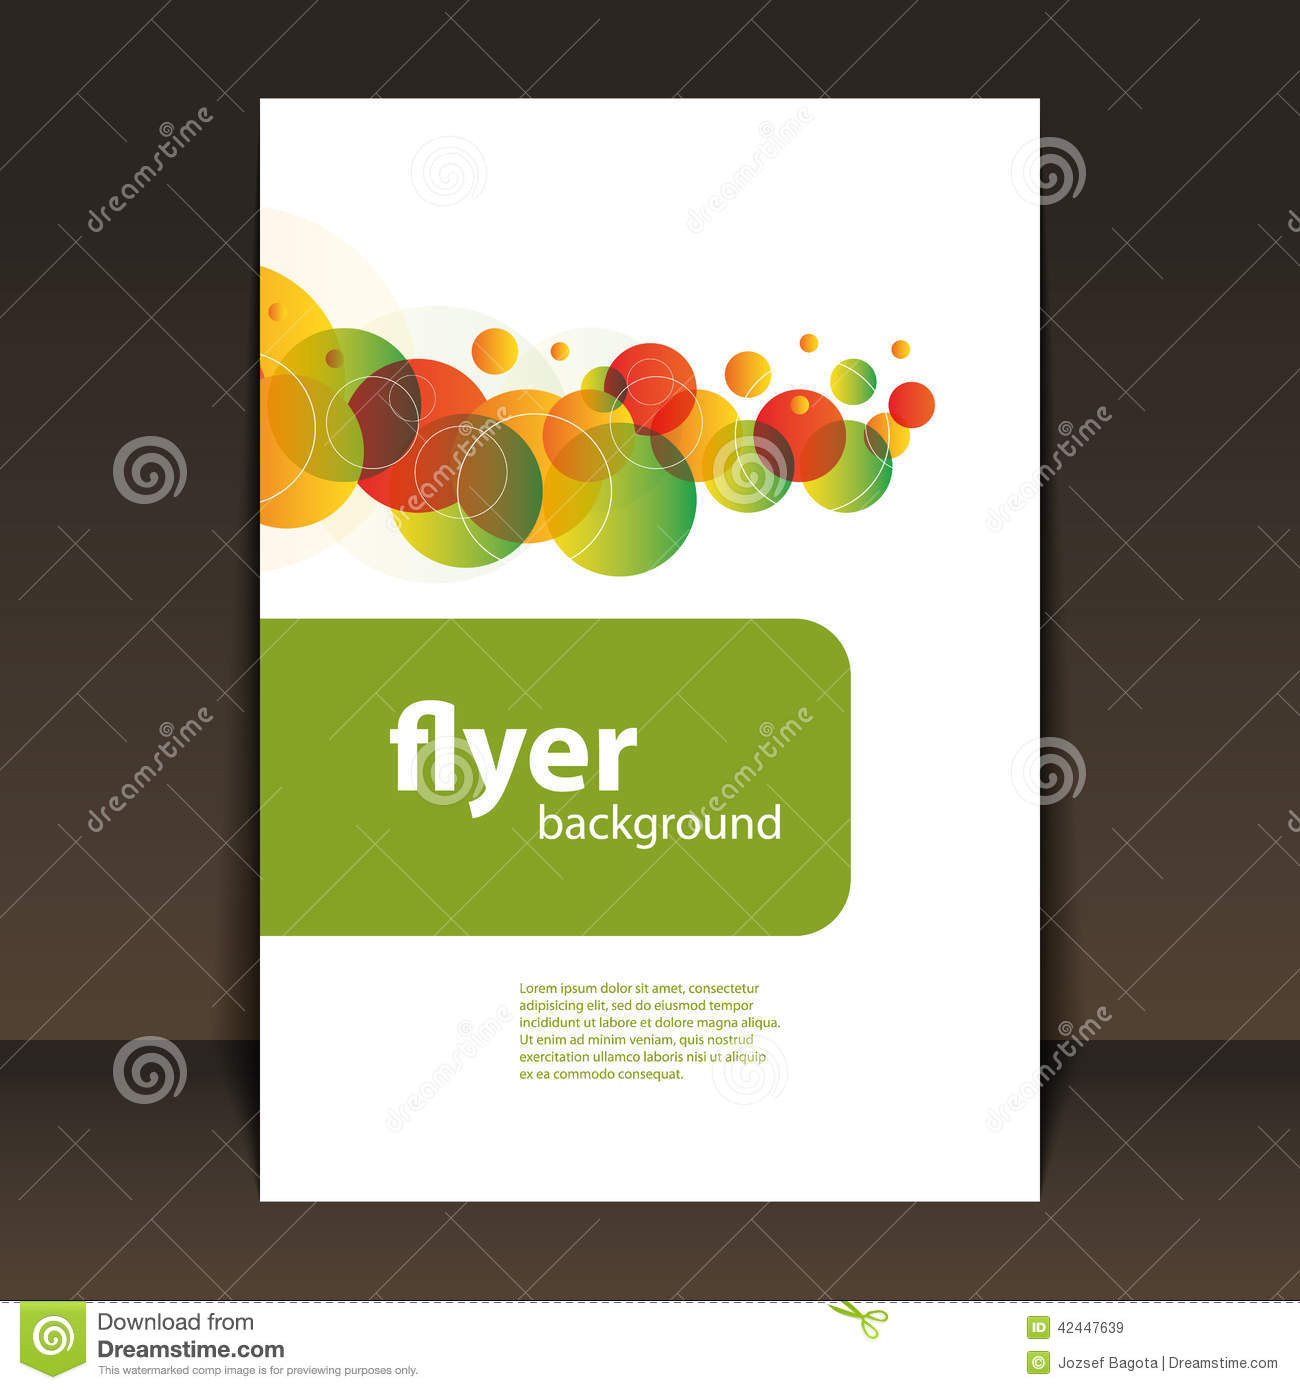 booklet background designs - Ideal.vistalist.co